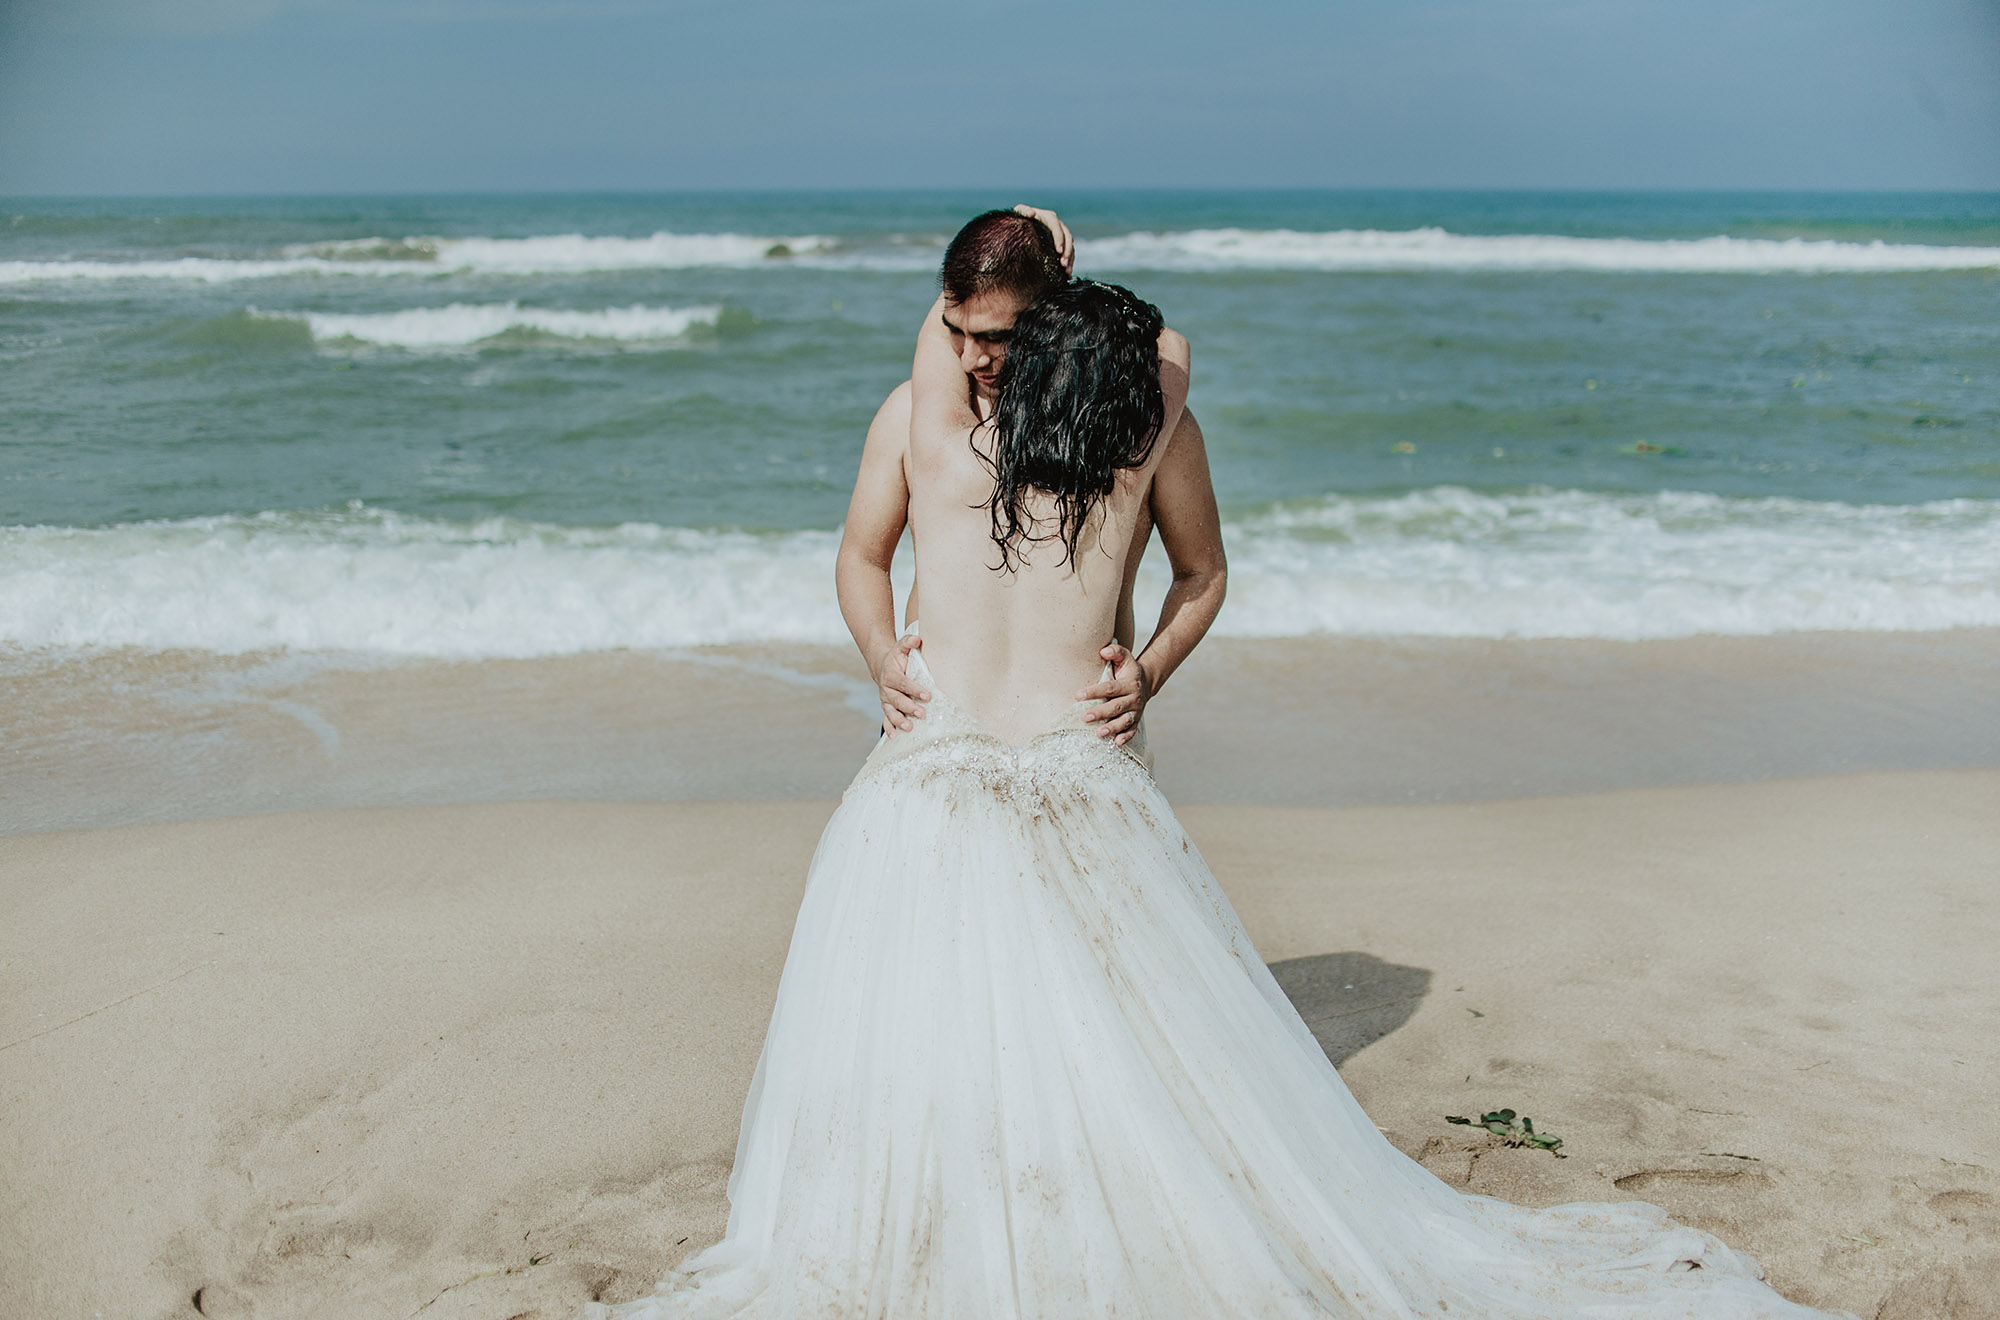 bibi y aldo trash the dress221.jpg